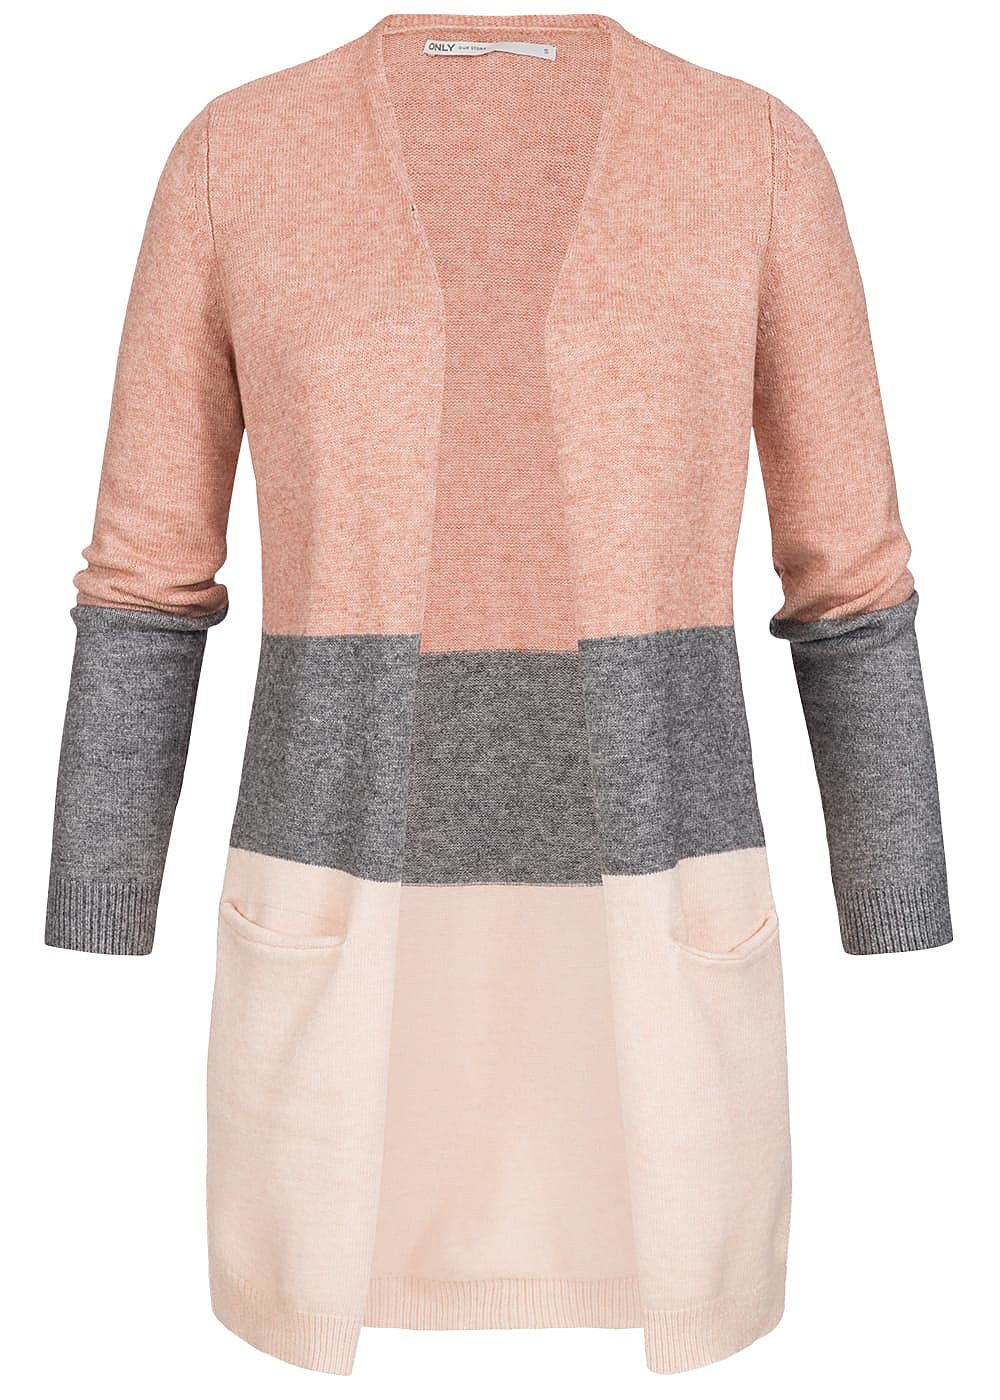 ONLY Damen NOOS Midi Colorblock Cardigan 2-Pockets misty rosa melange - Art.-Nr.: 20094201